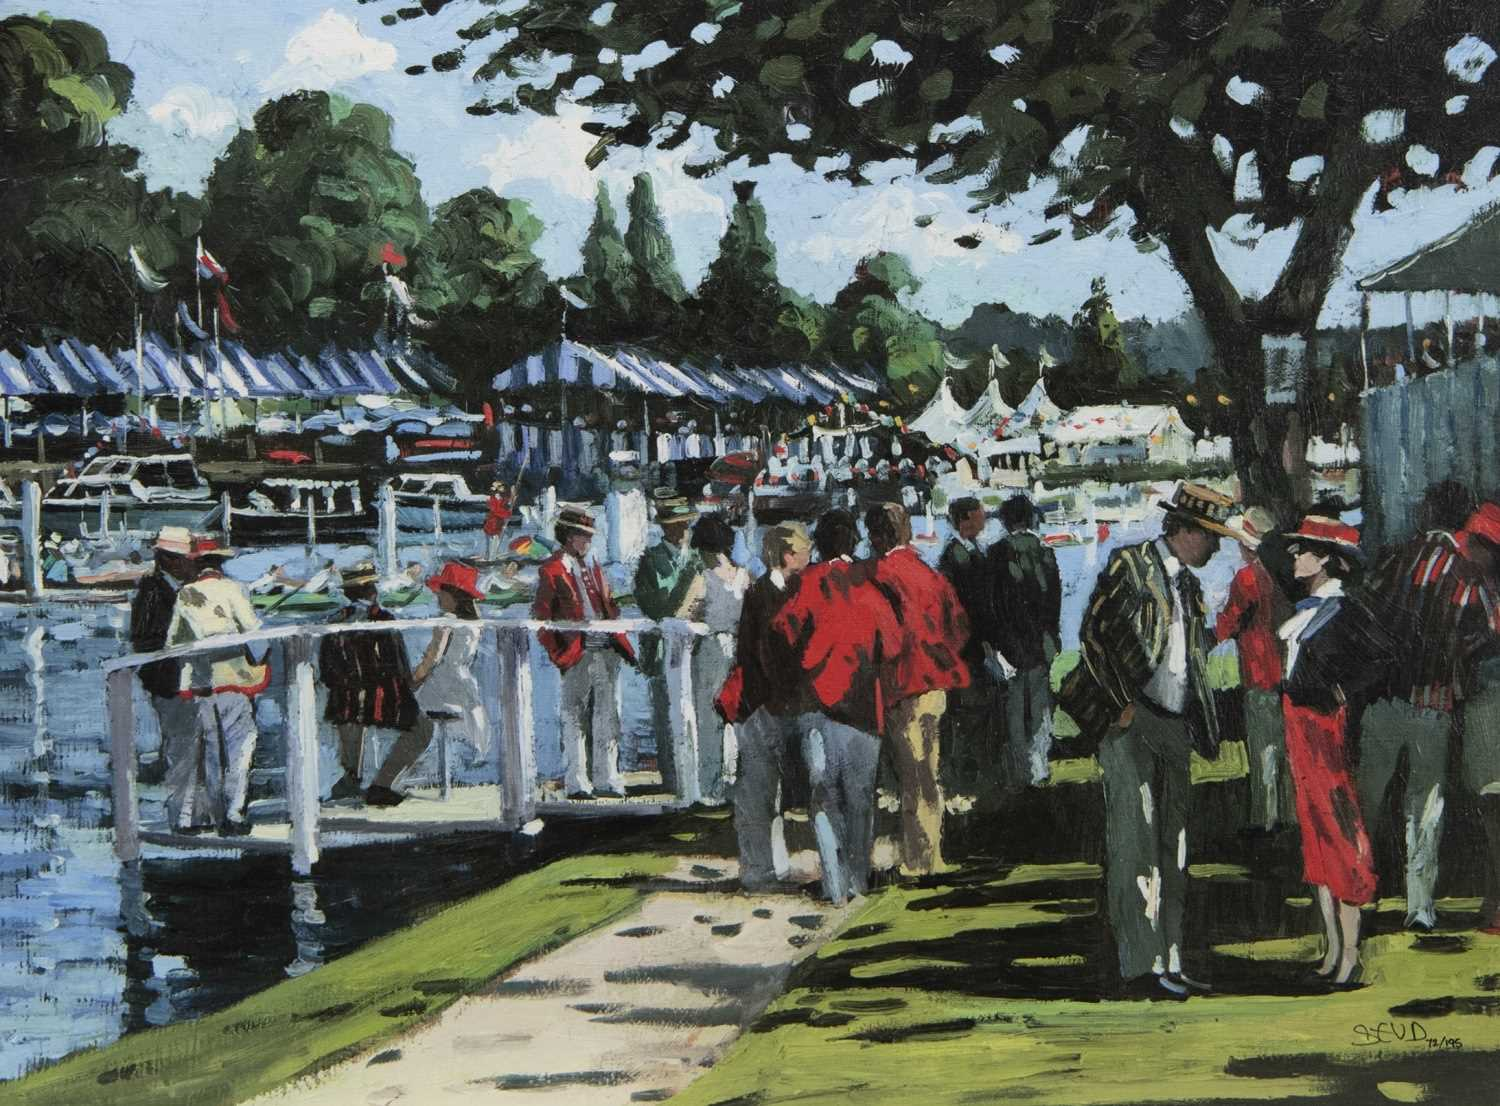 Lot 11 - ENGLISH ELEGANCE, A HAND EMBELLISHED CANVAS BY SHERREE VALENTINE DAINES